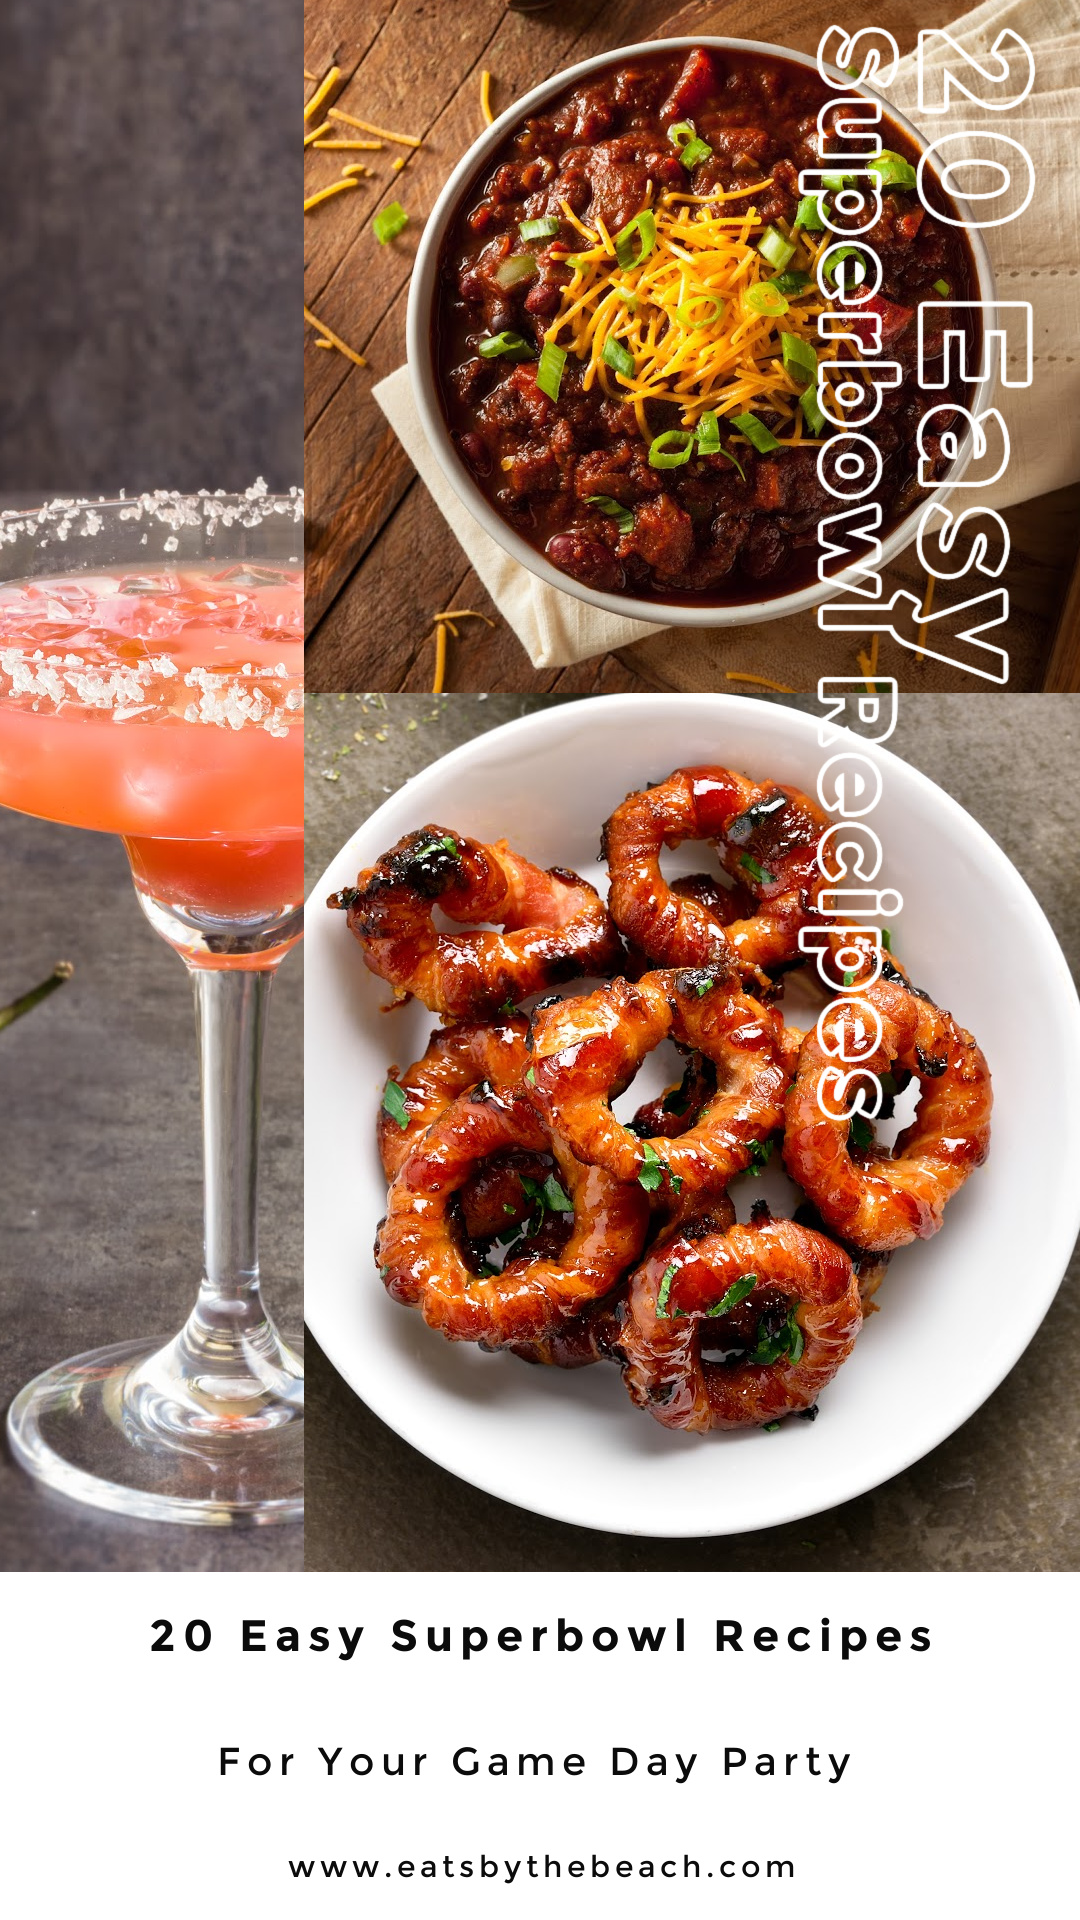 20 EASY SUPER BOWL RECIPES